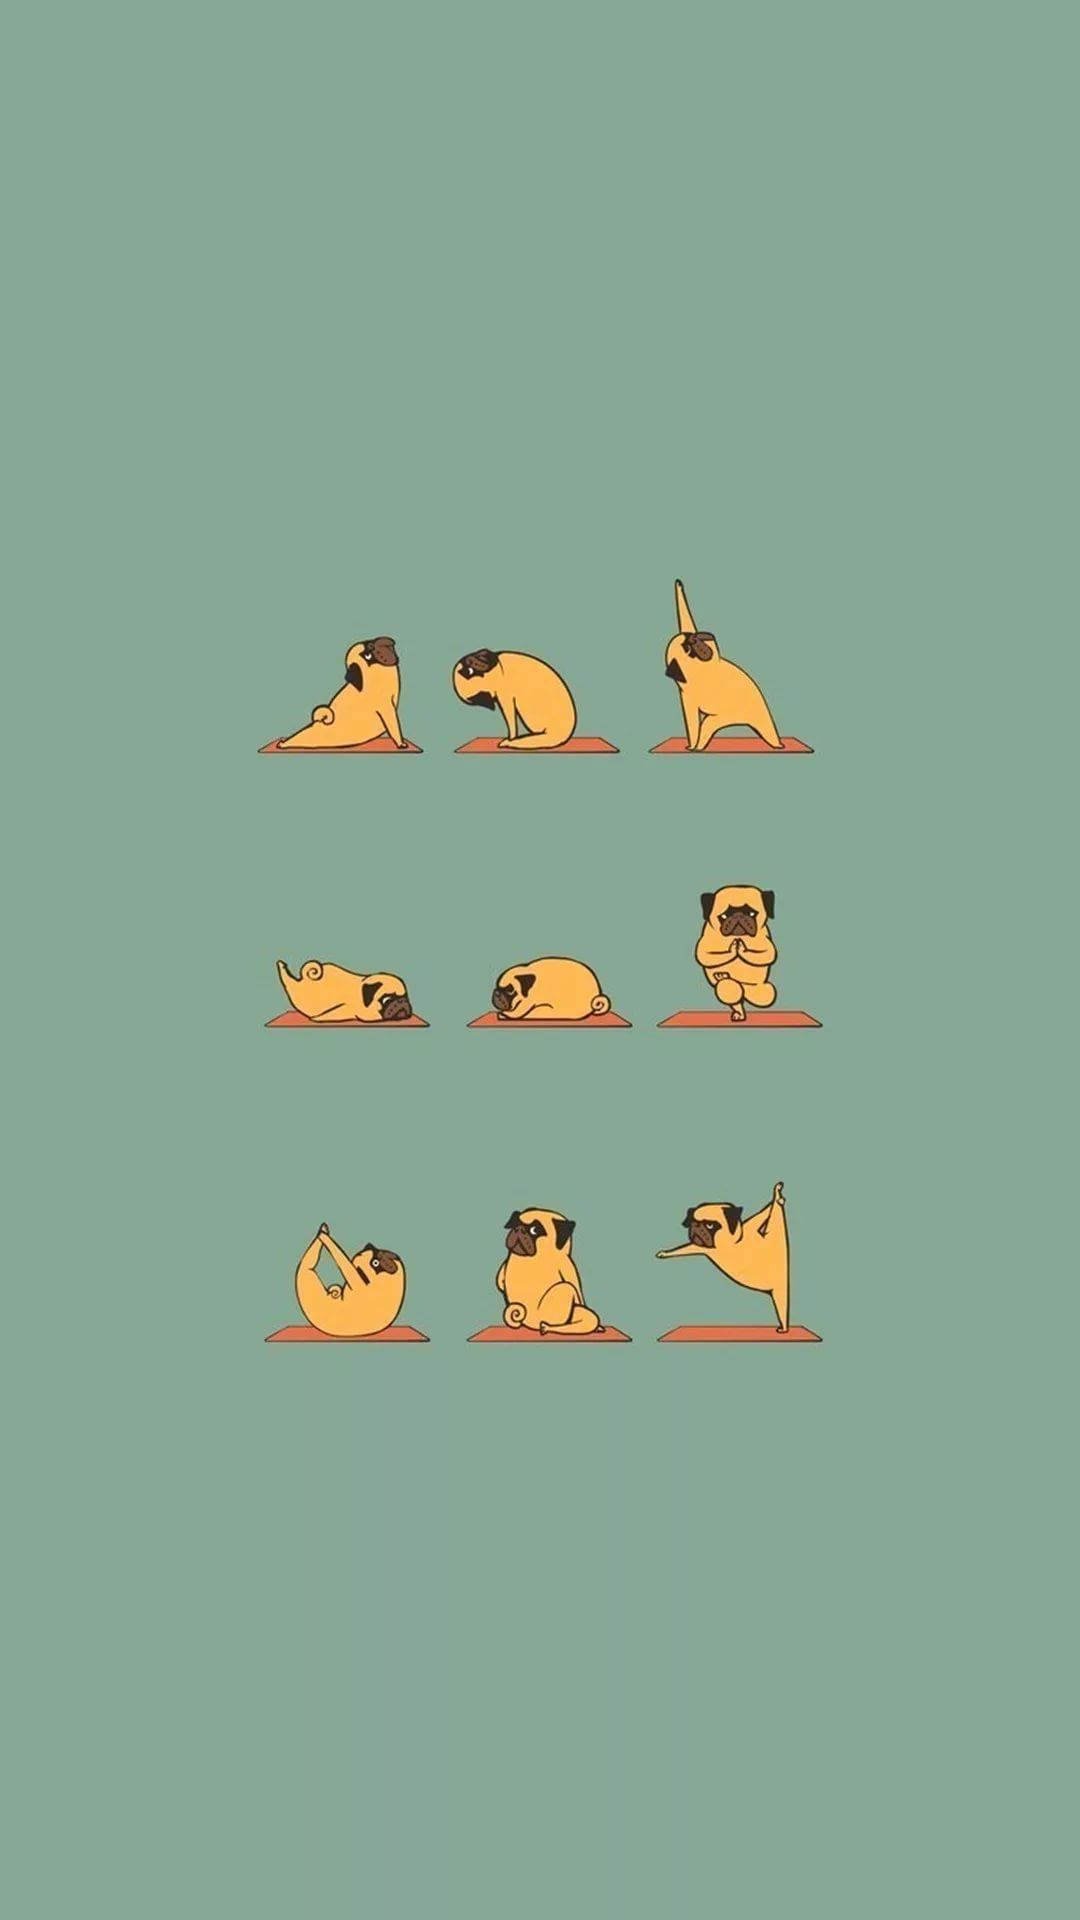 Pug wallpaper for iPhone